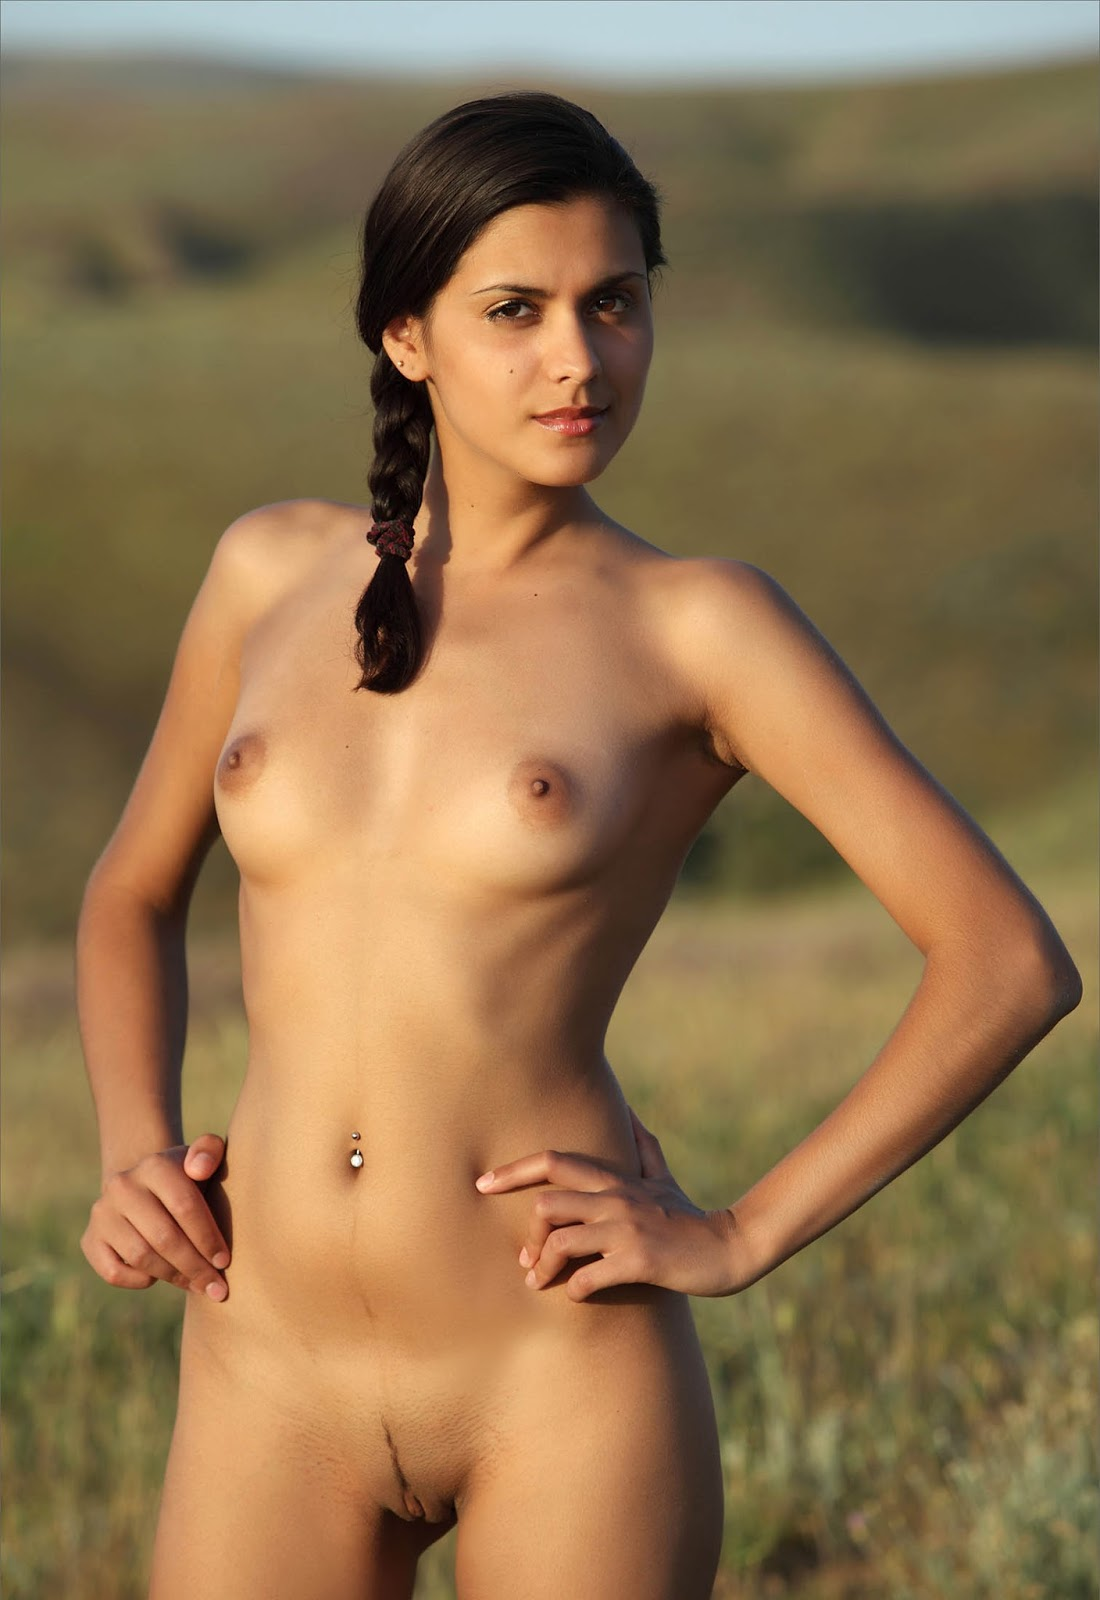 Hot And Sexy Girls Nude Photos Really Indian Girls-Bhabhi -9346